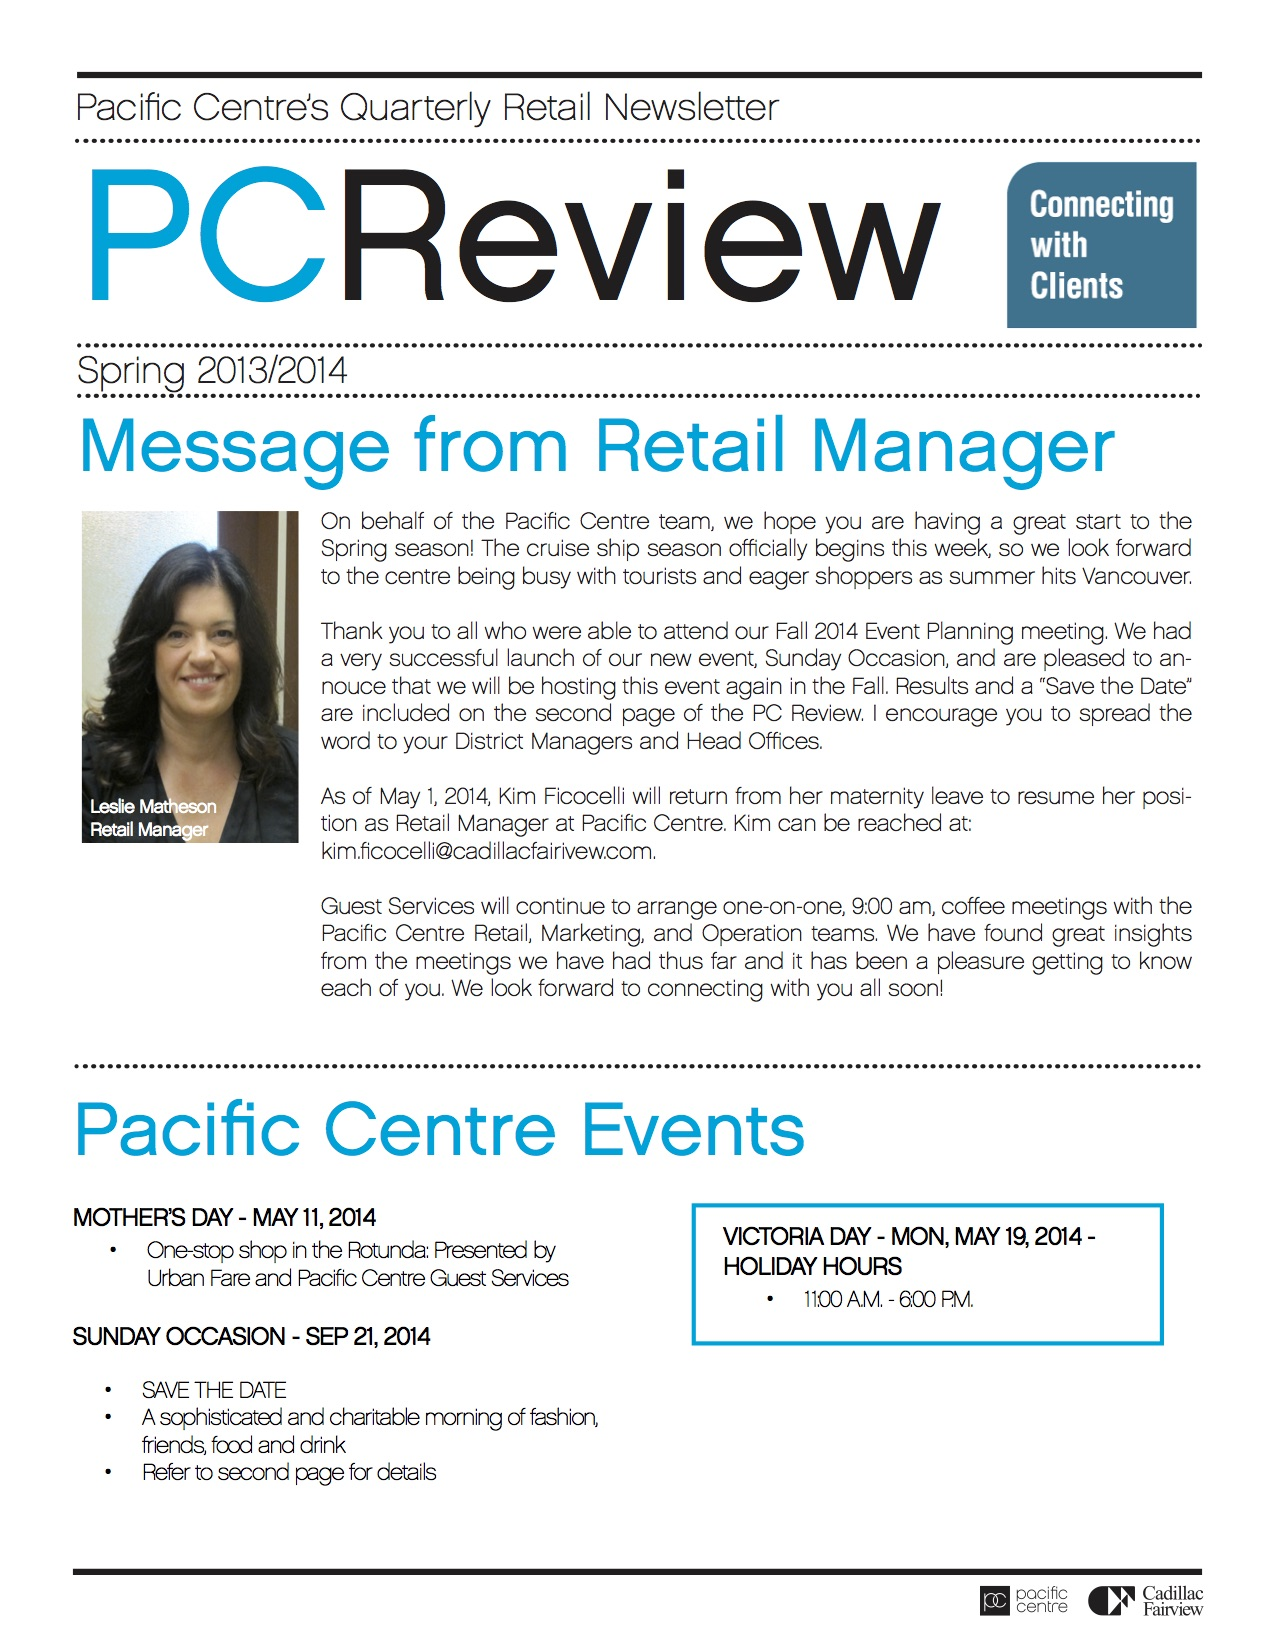 Pacific Centre's Newsletter CRM